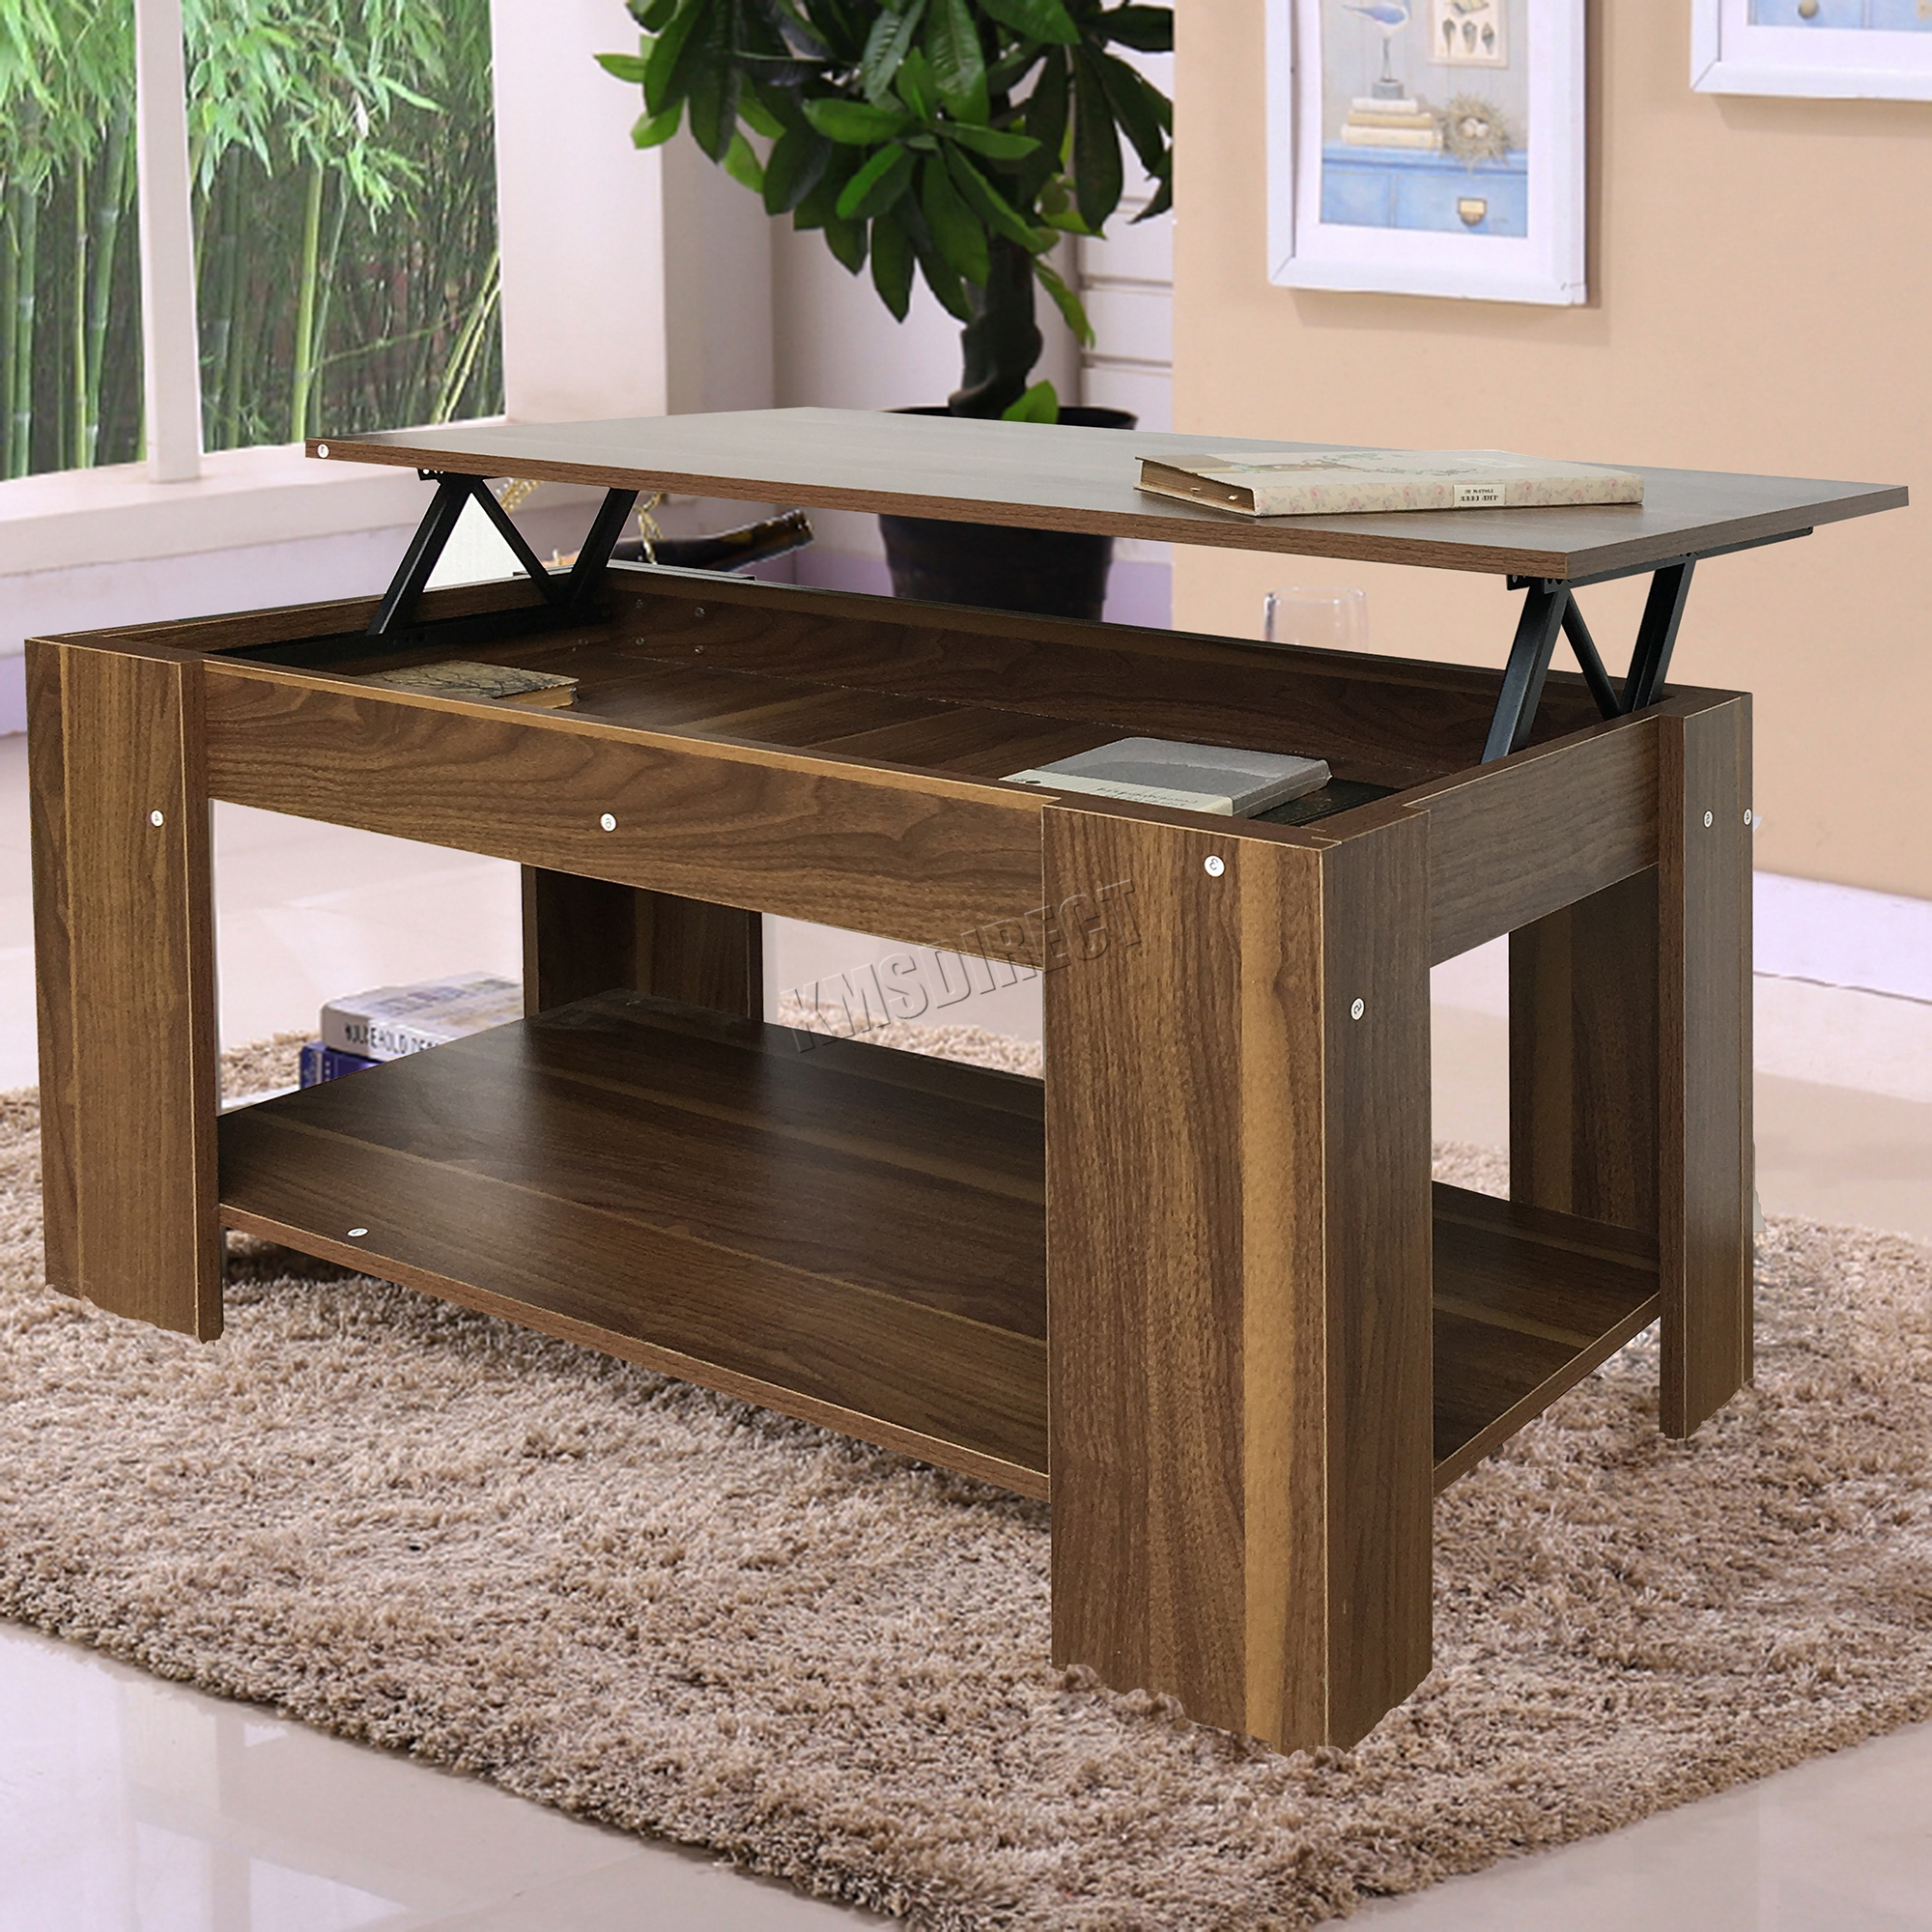 Coffee Table With Storage Uk: FoxHunter Lift Up Top Coffee Table MDF With Storage And